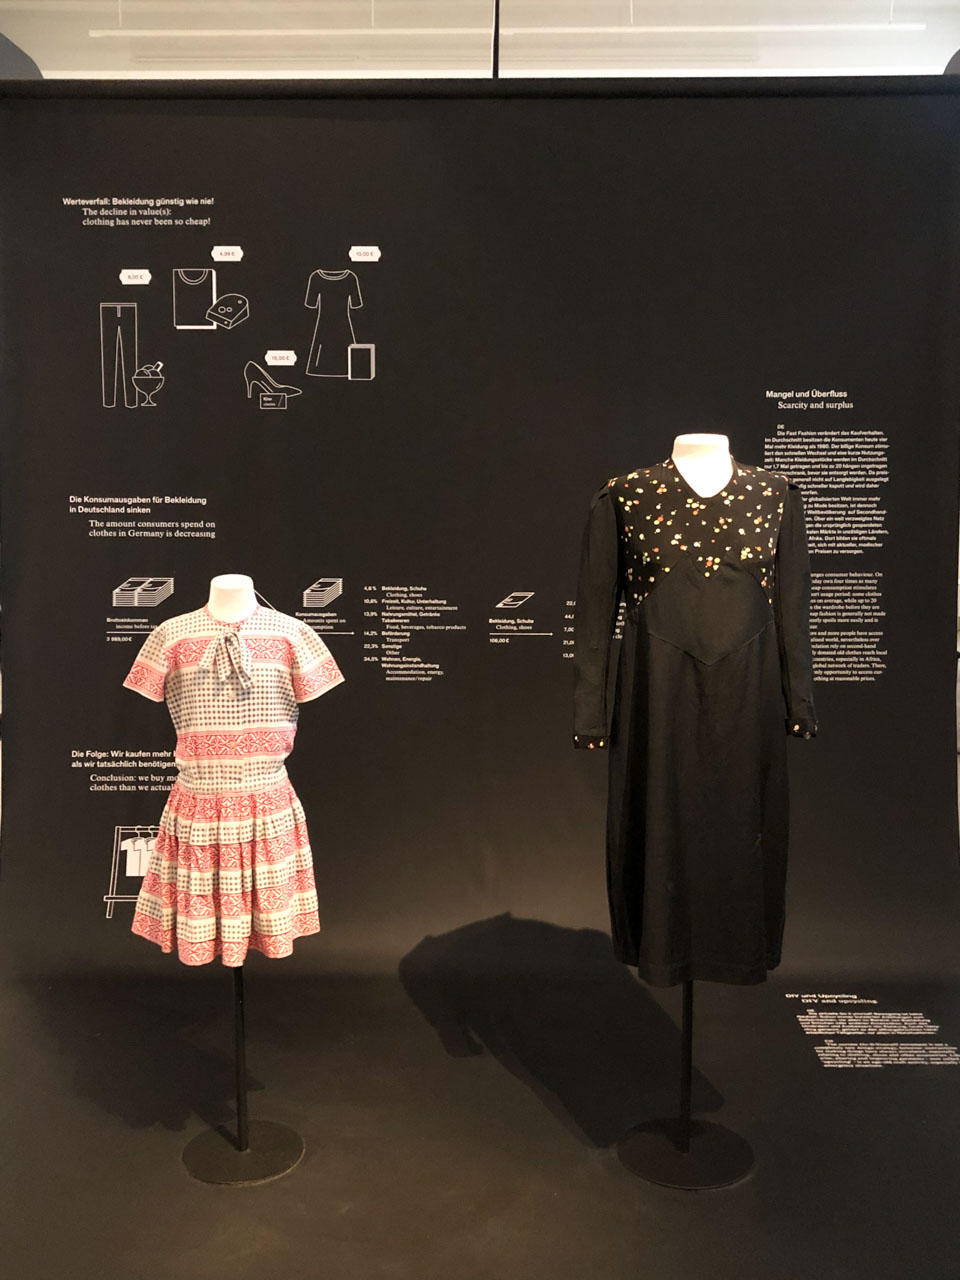 A women's and a girl's dress on display at the Museum of European Cultures in Berlin